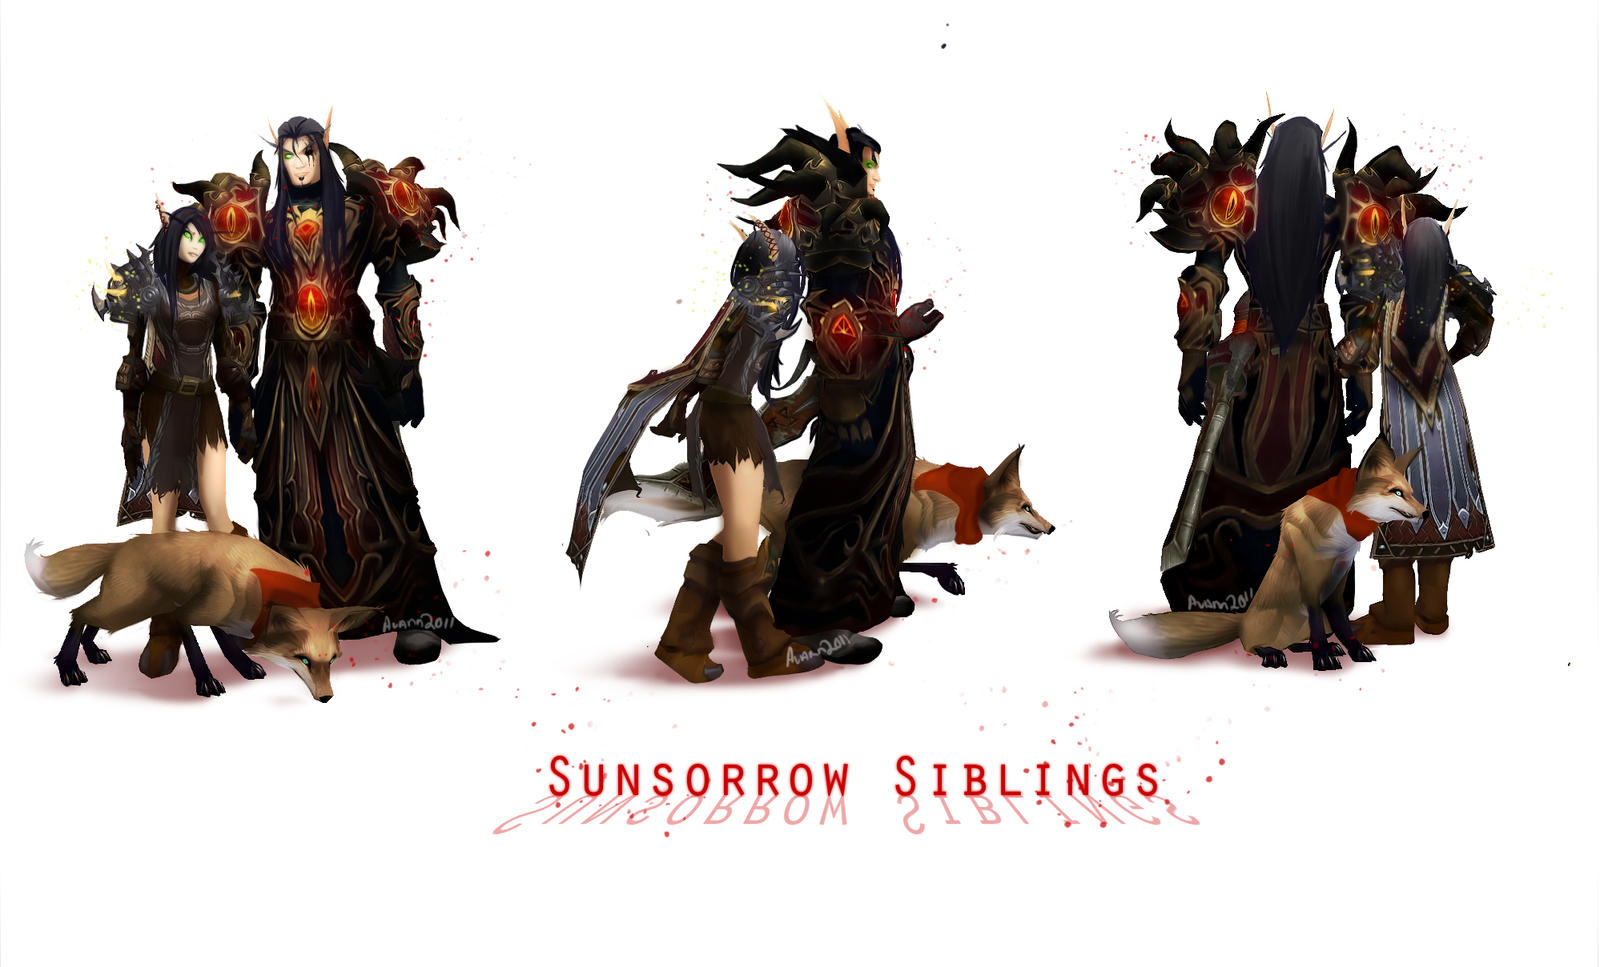 Sunsorrow Siblings by AvannTeth